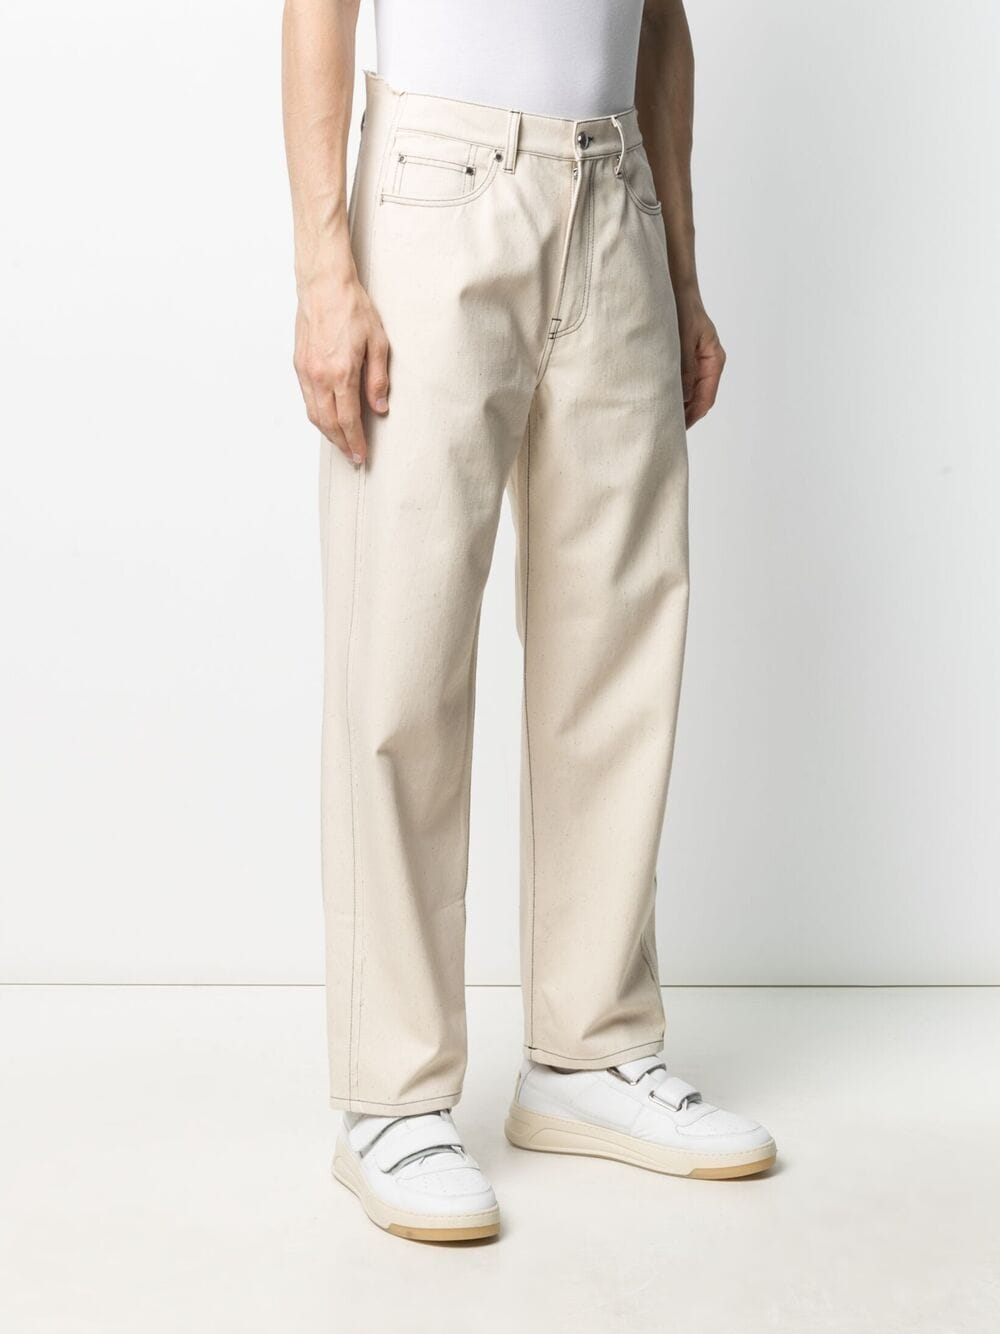 Sunnei high waist straight jeans man off white SUNNEI | Trousers | SN1SMT11AP - TE238.005OFFWHITE